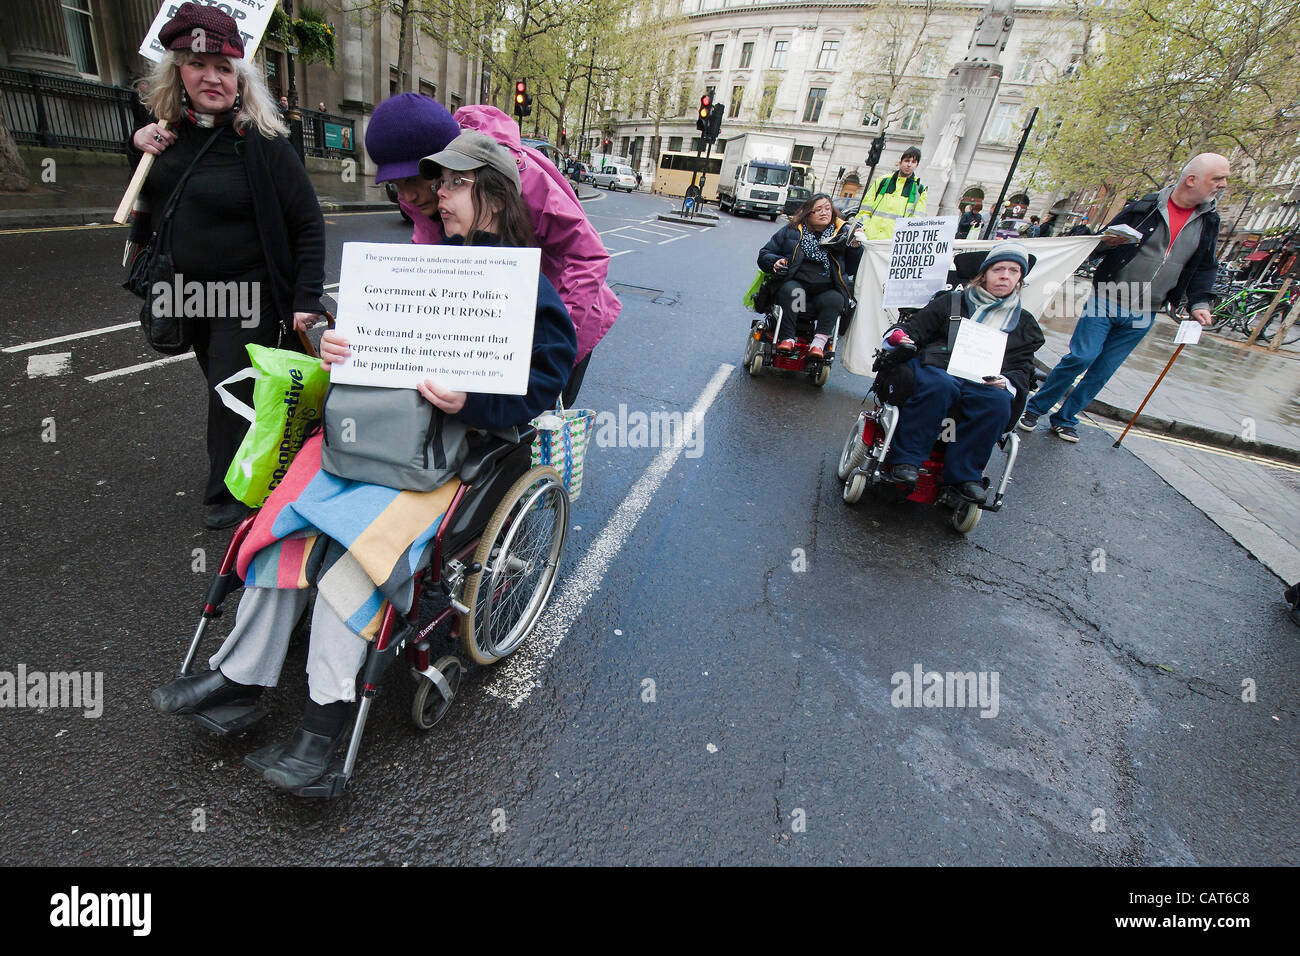 Members of DPAC (Disabled people against cuts) and UKUncut march from Leicester Square to Trafalgar Square where Stock Photo